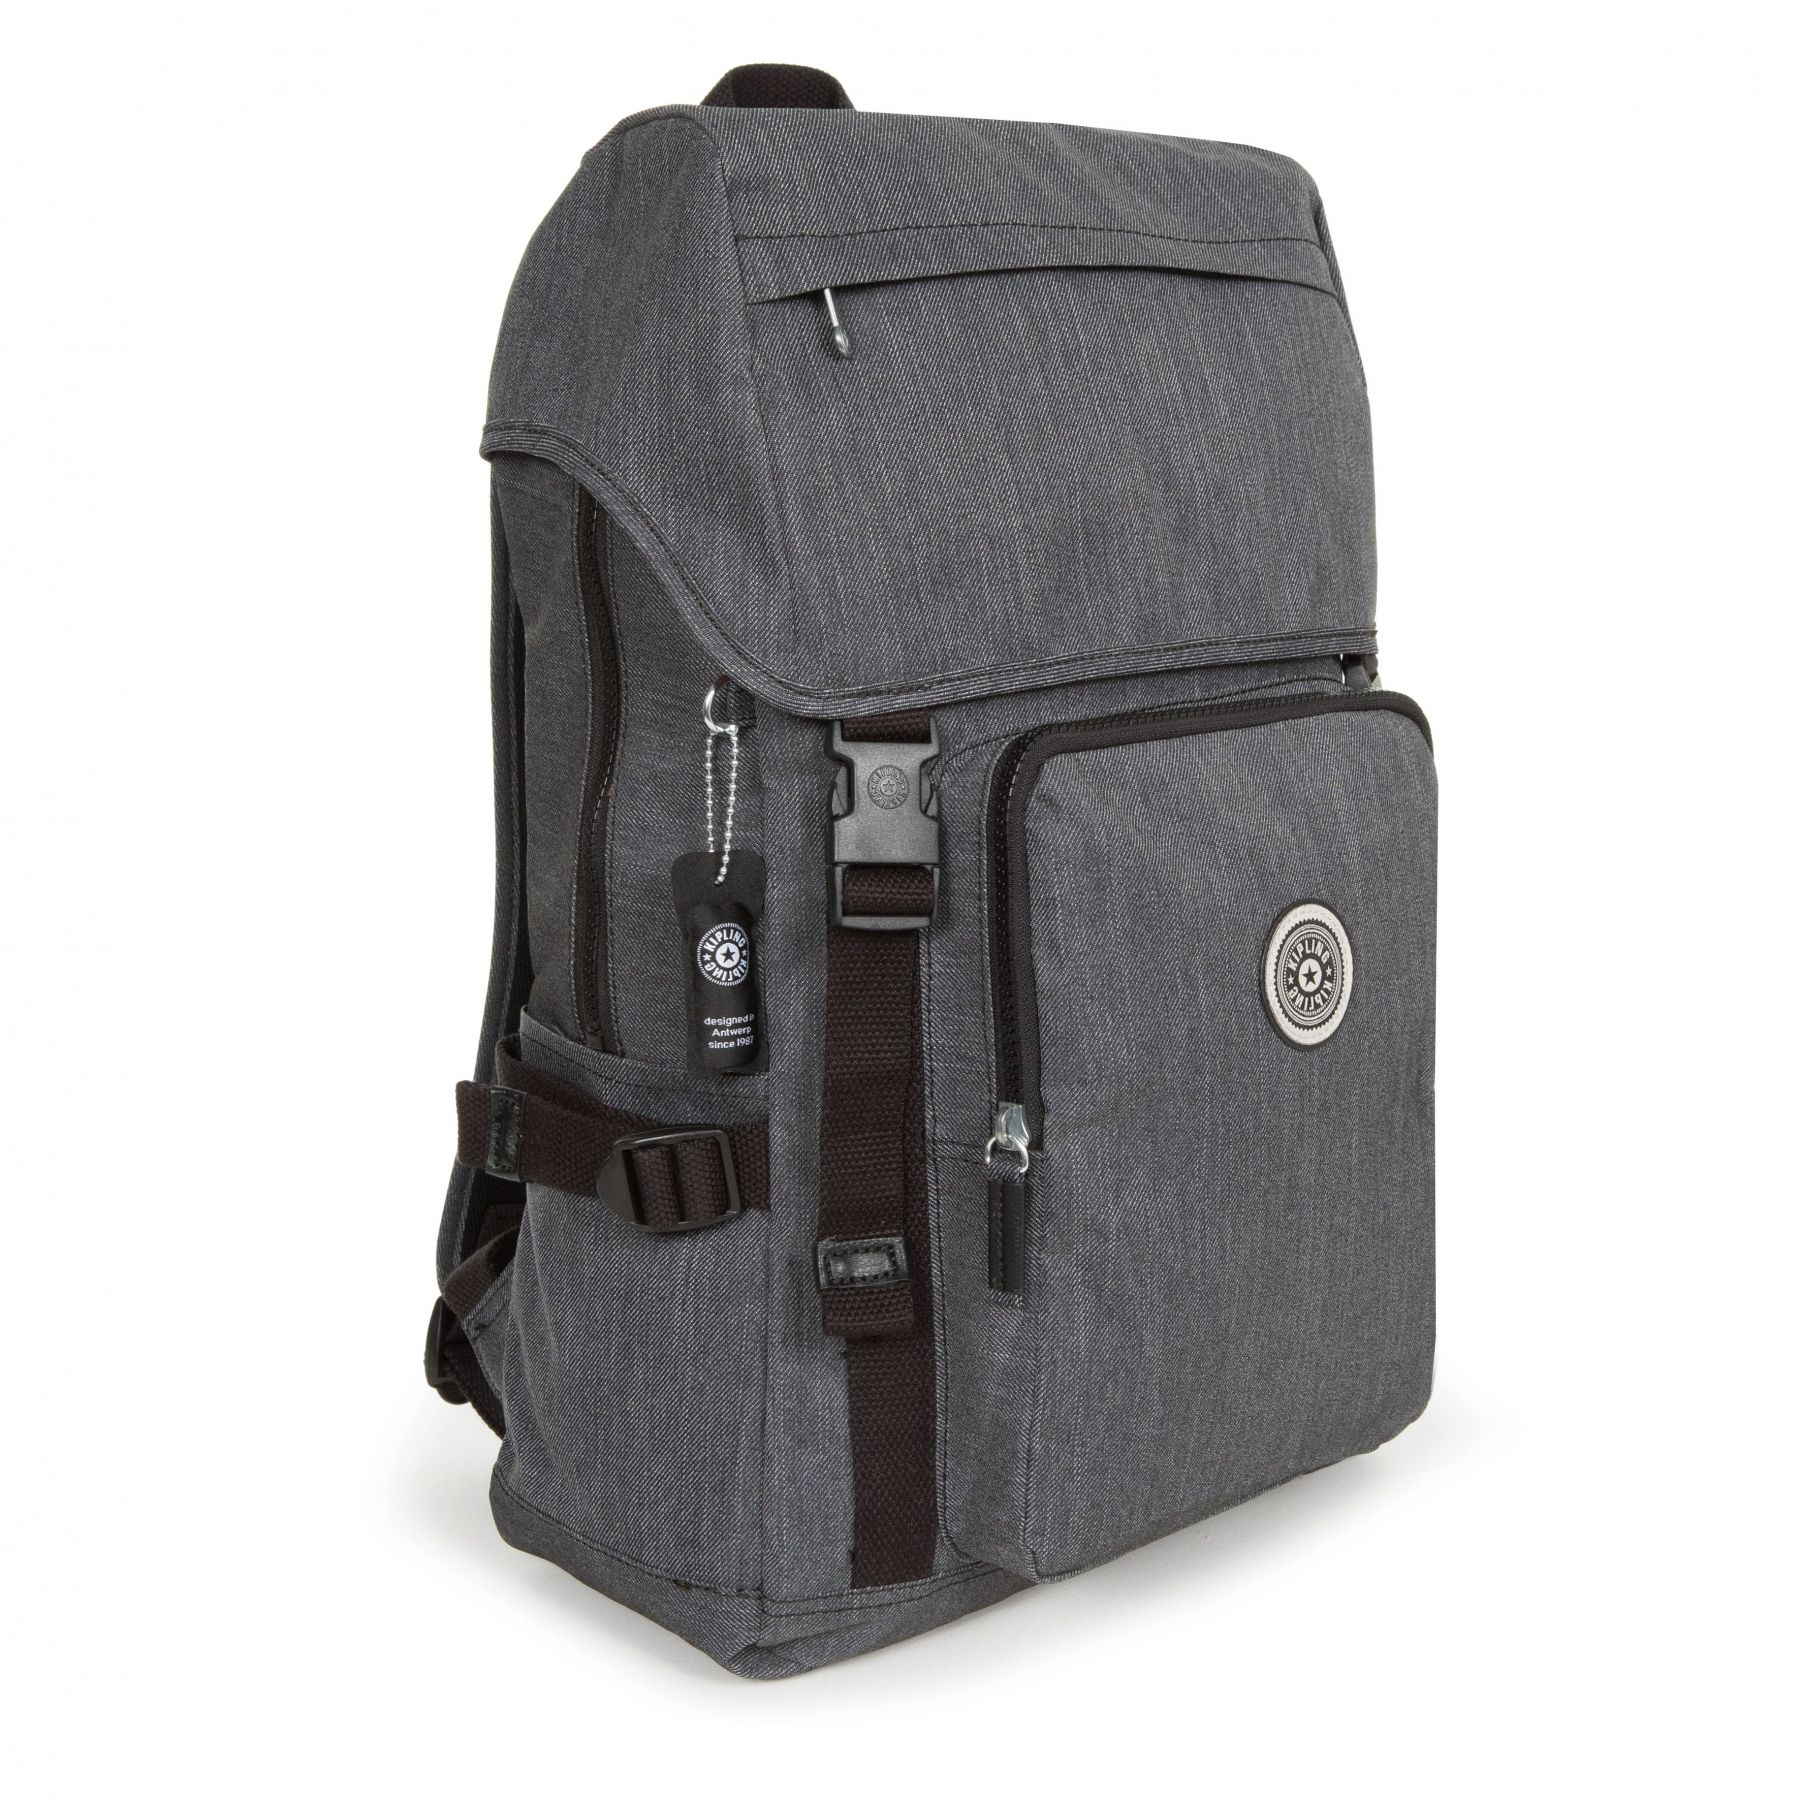 YANTIS BACKPACKS by Kipling